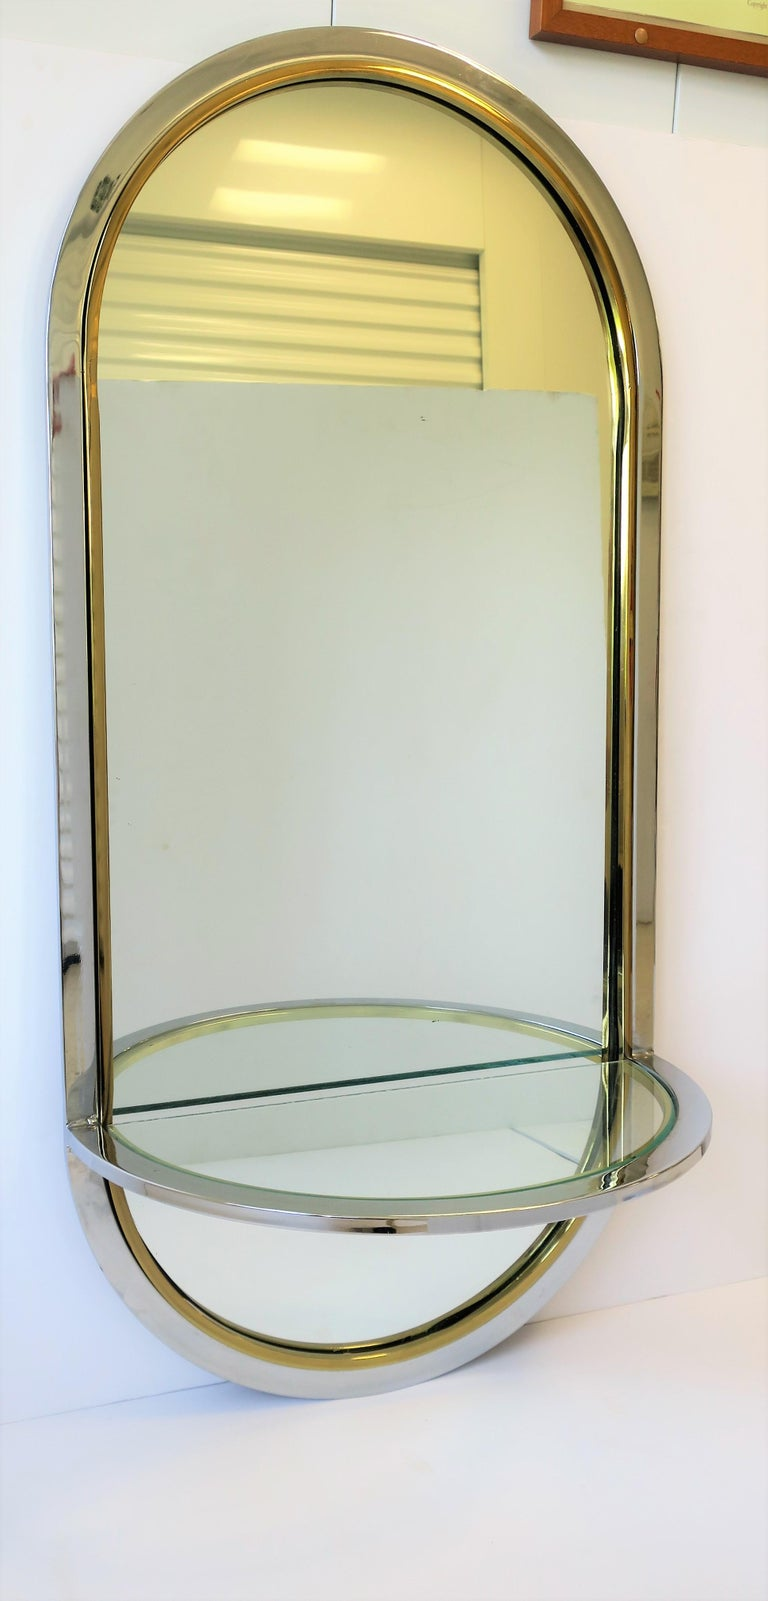 A beautiful Postmodern or '70s Modern style brass and chrome vanity, foyer or hall wall mirror with circular top and bottom, and demilune console shelf, circa late 20th century. Wall mirror's demilune glass shelf is held by its chrome and brass